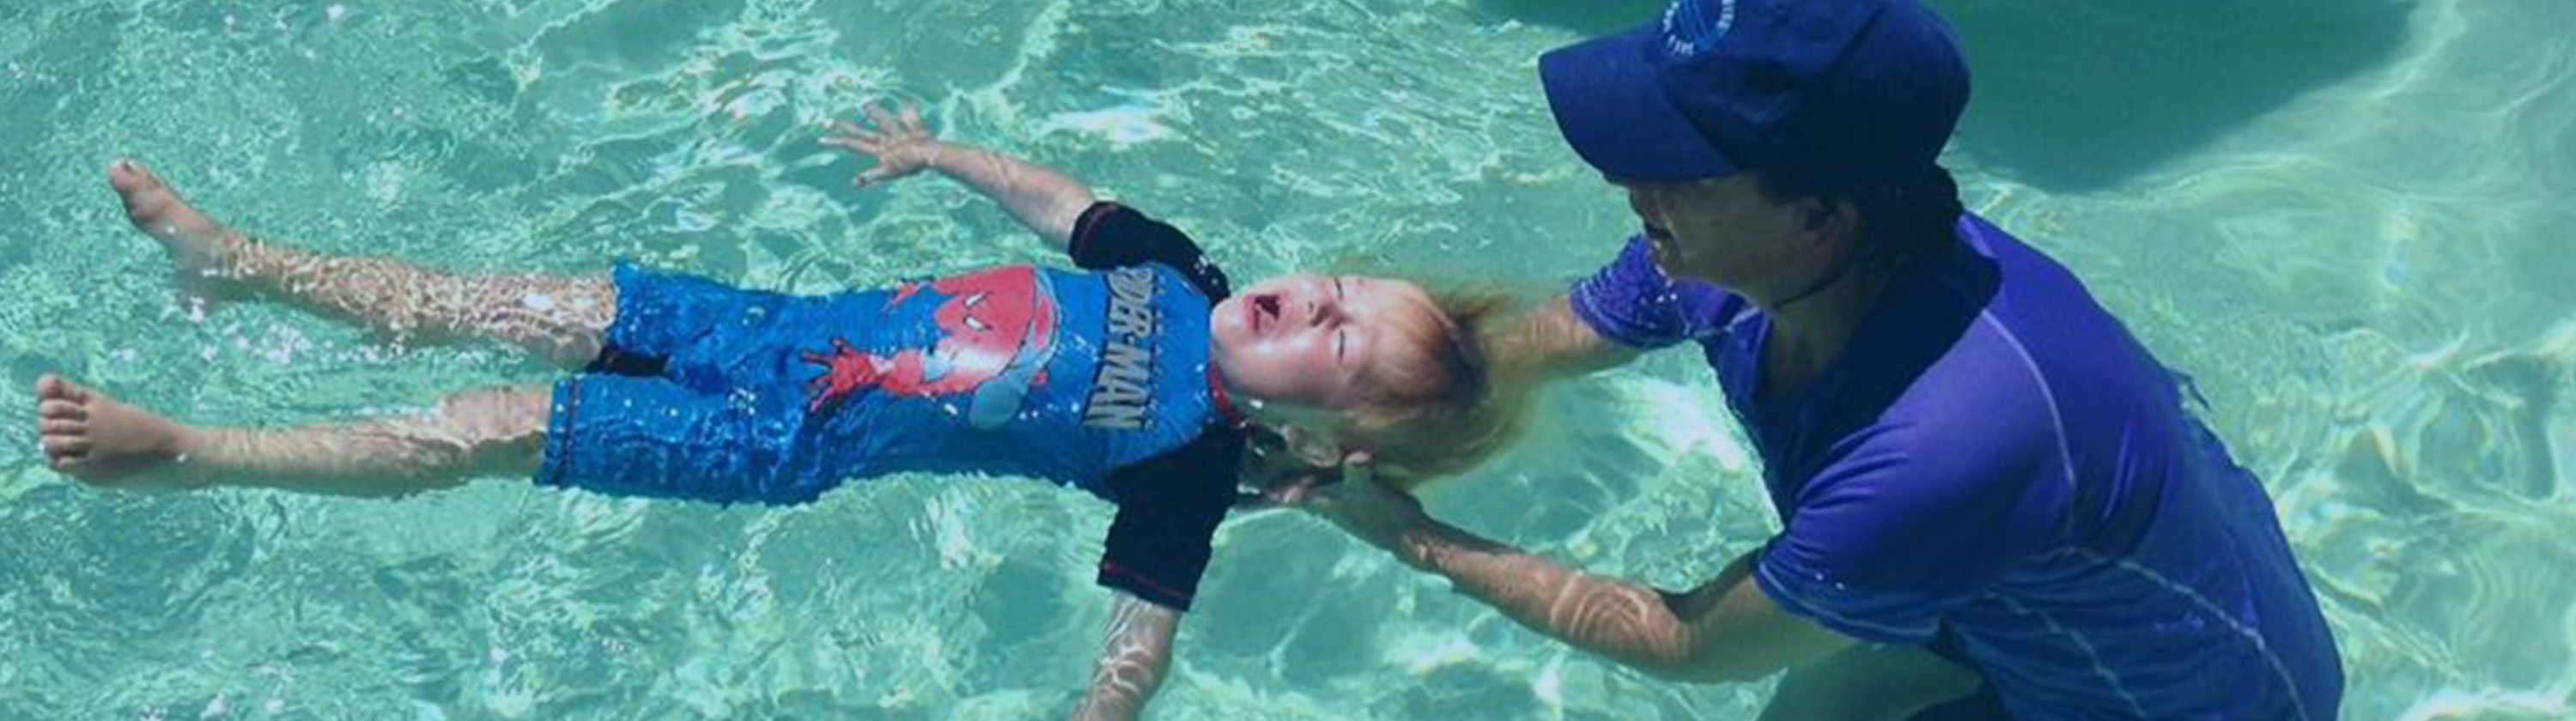 Swimming-lessons-Perth-Review-la-trang